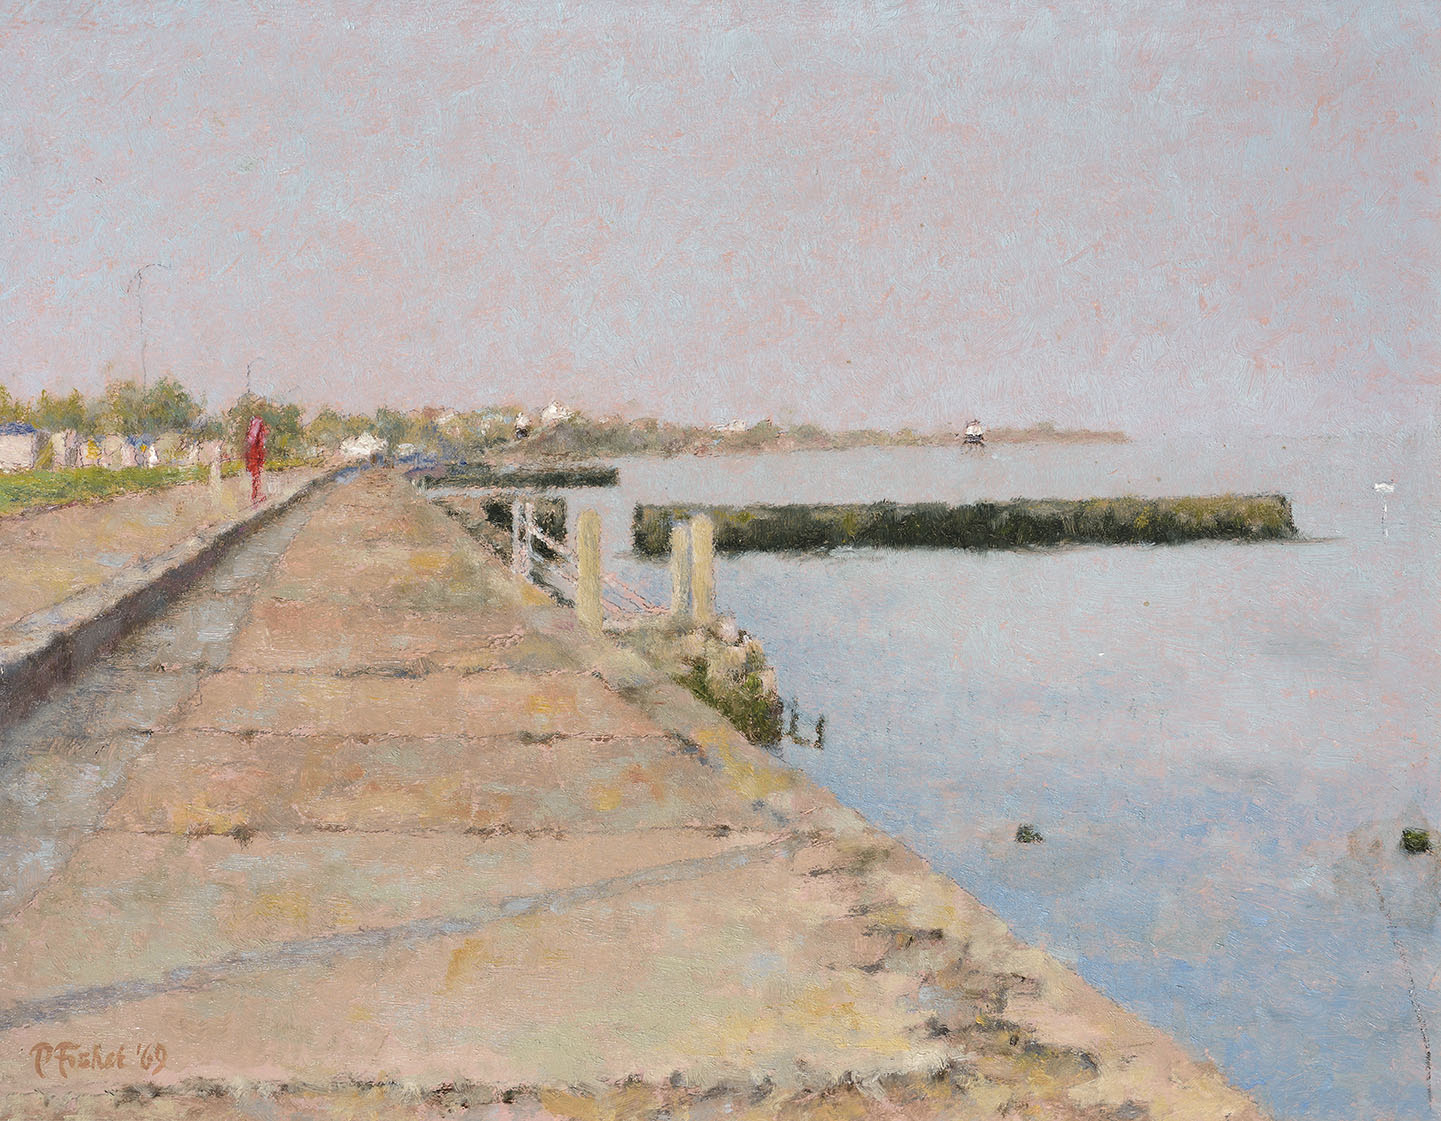 Patrick Julian Fisher (1930-1987)    High Summer, Dovercourt Promenade,  1969, Oil on board, 10 x 13 in, Signed and dated  [CAS 34] Acquired in 1977